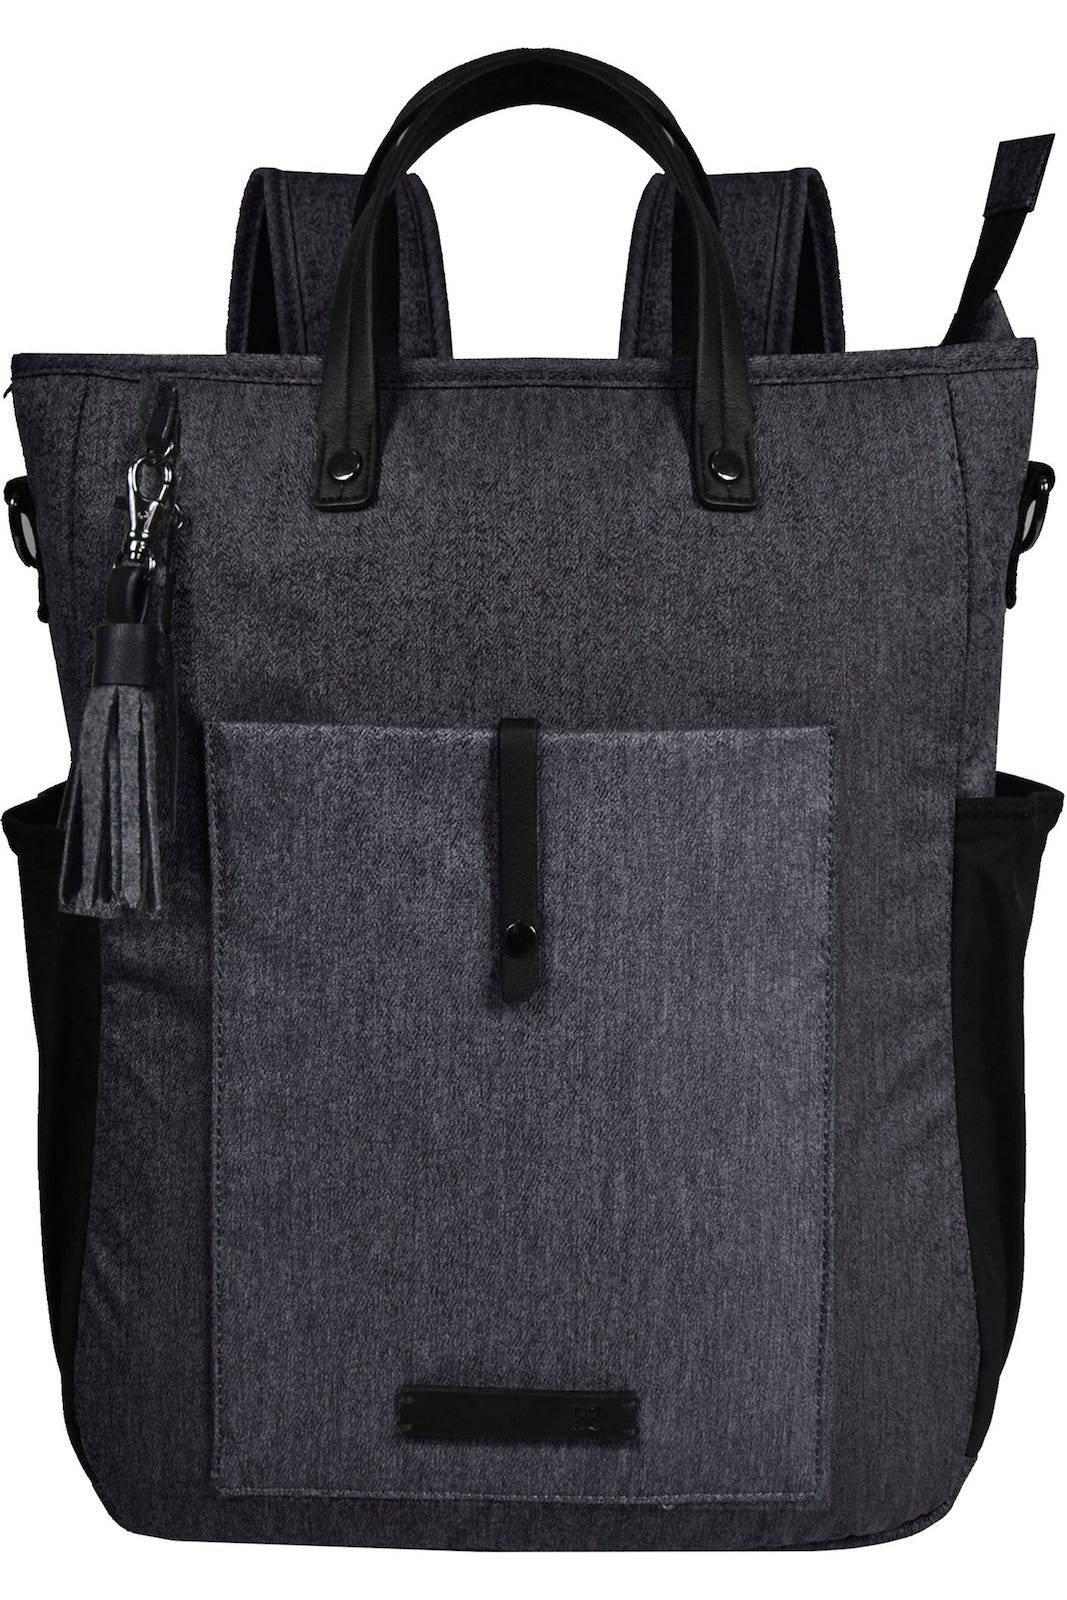 best gym bags for women 2016 cute totes duffels more. Black Bedroom Furniture Sets. Home Design Ideas